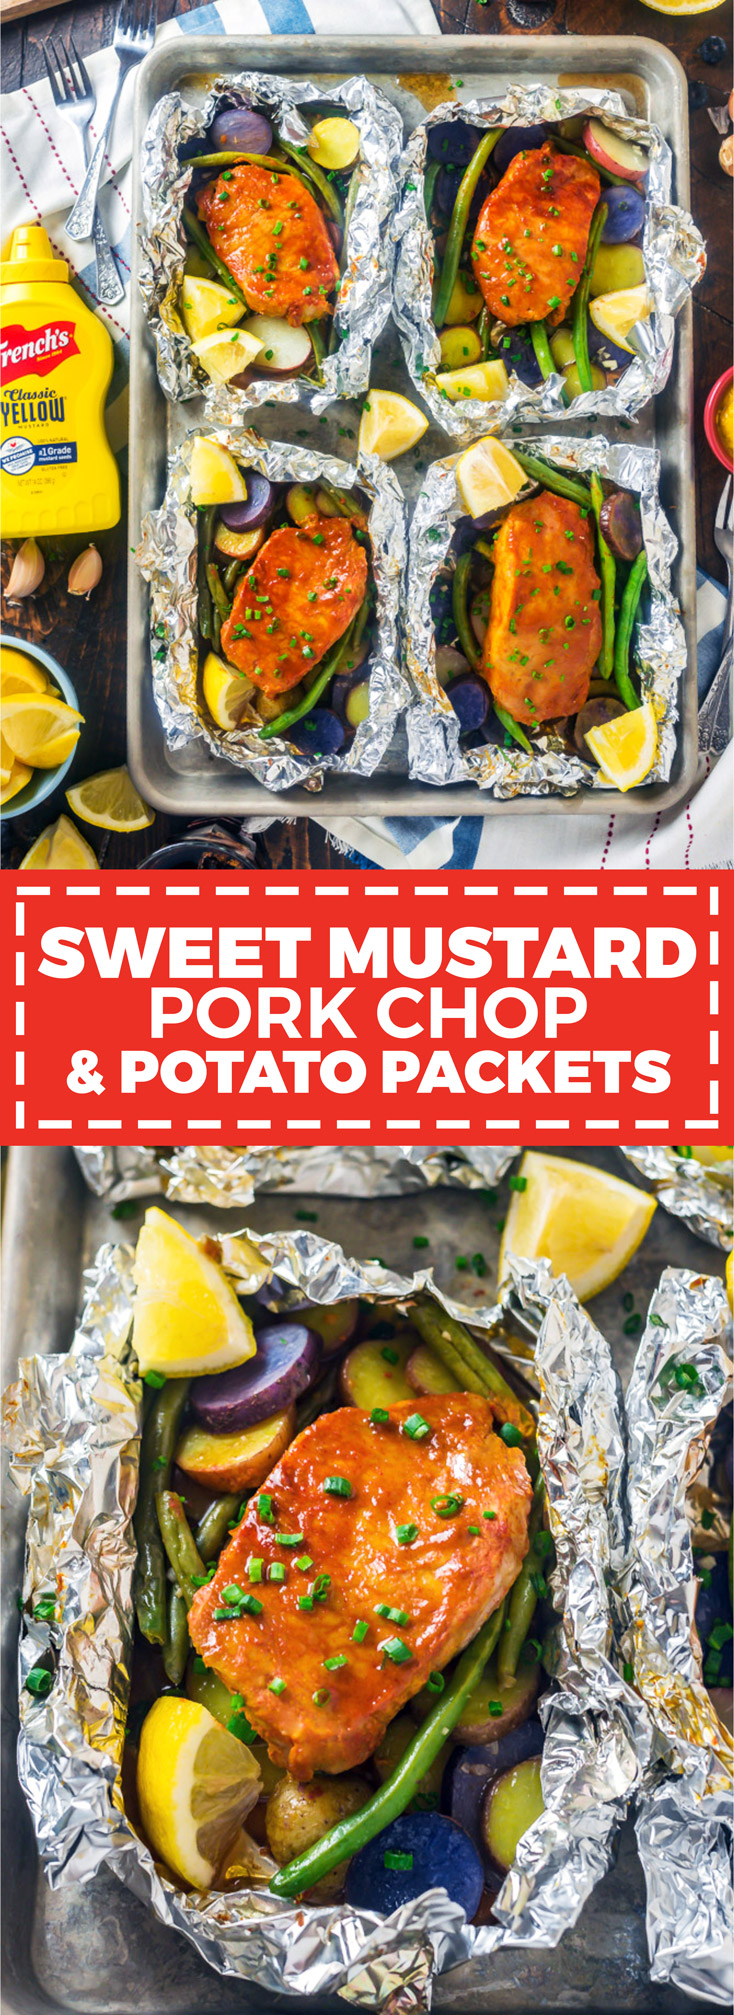 Sweet Mustard Pork and Potato Packets. They say good things come in small packages. These tangy, sweet, and smoky pork chop foil packets prove it-- and they're extremely easy to make, to boot. | #ad @FrenchsFoods | hostthetoast.com